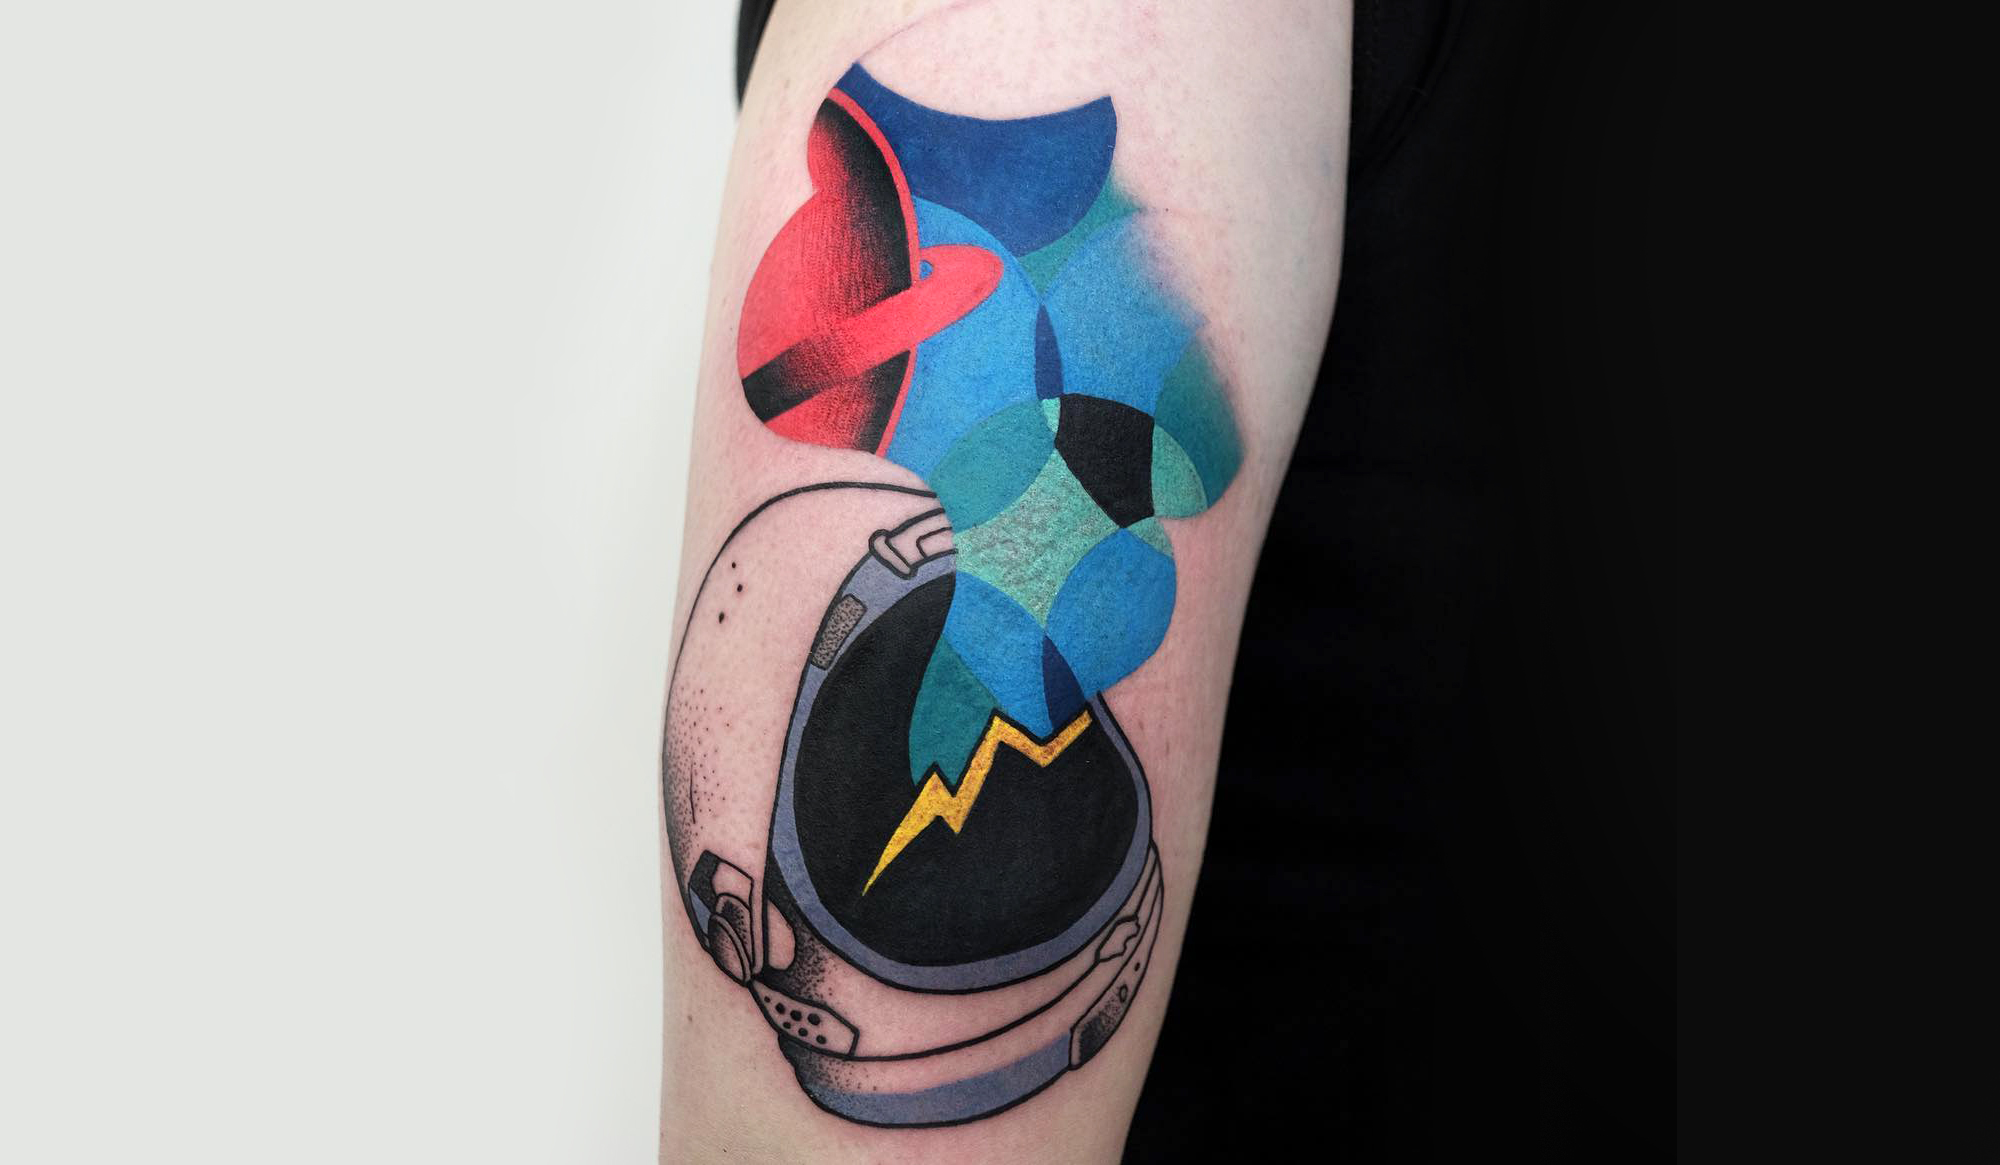 Pushing the Limit in Tattoos by Aleksy Marcinów